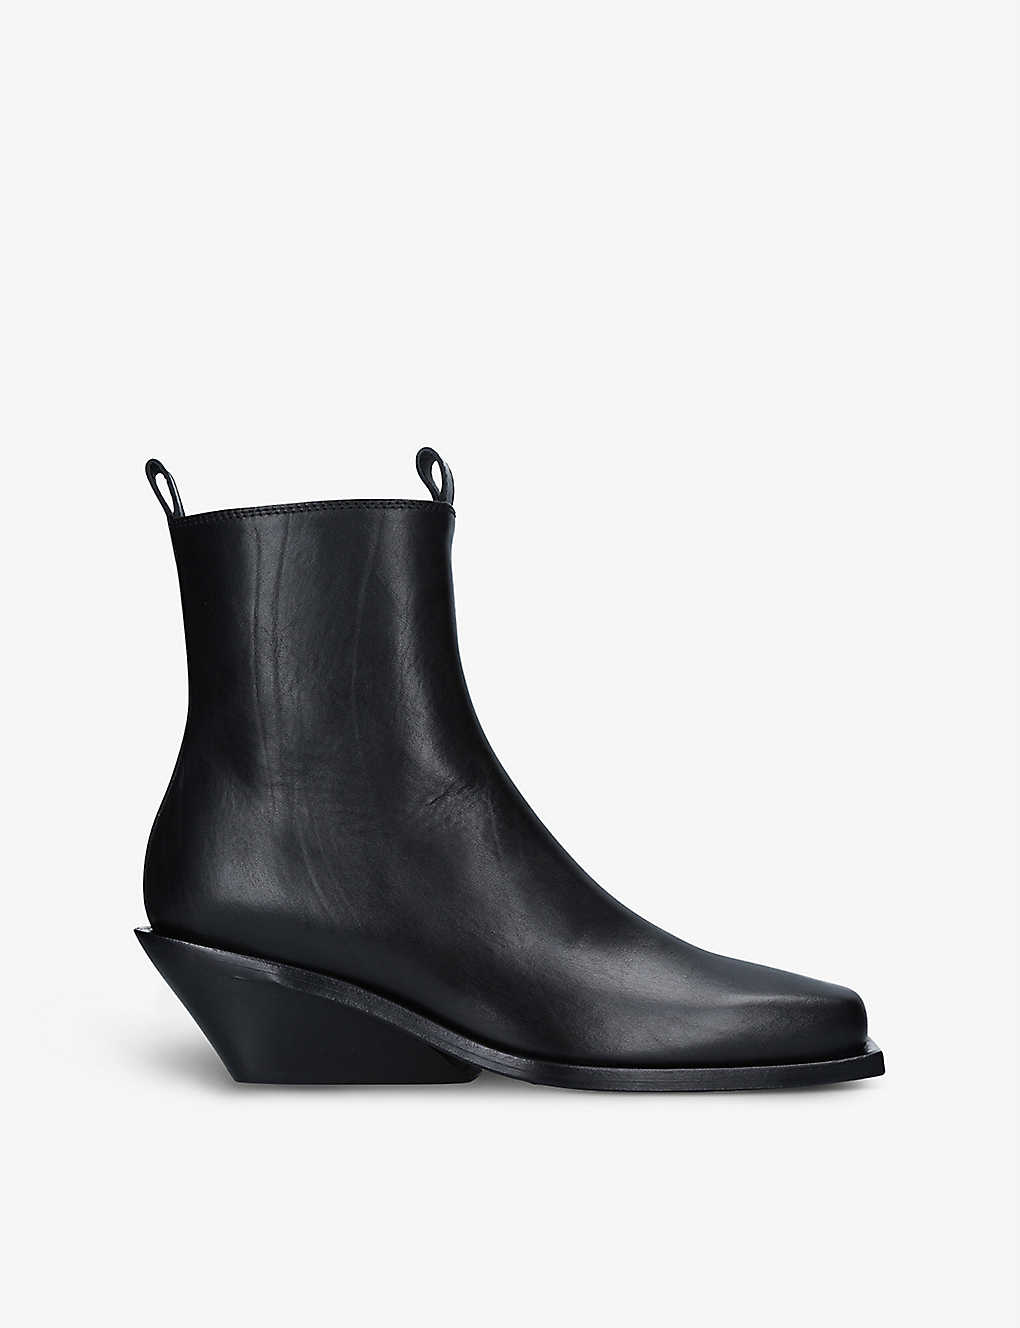 ANN DEMEULEMEESTER: Leather wedged-heel ankle boots